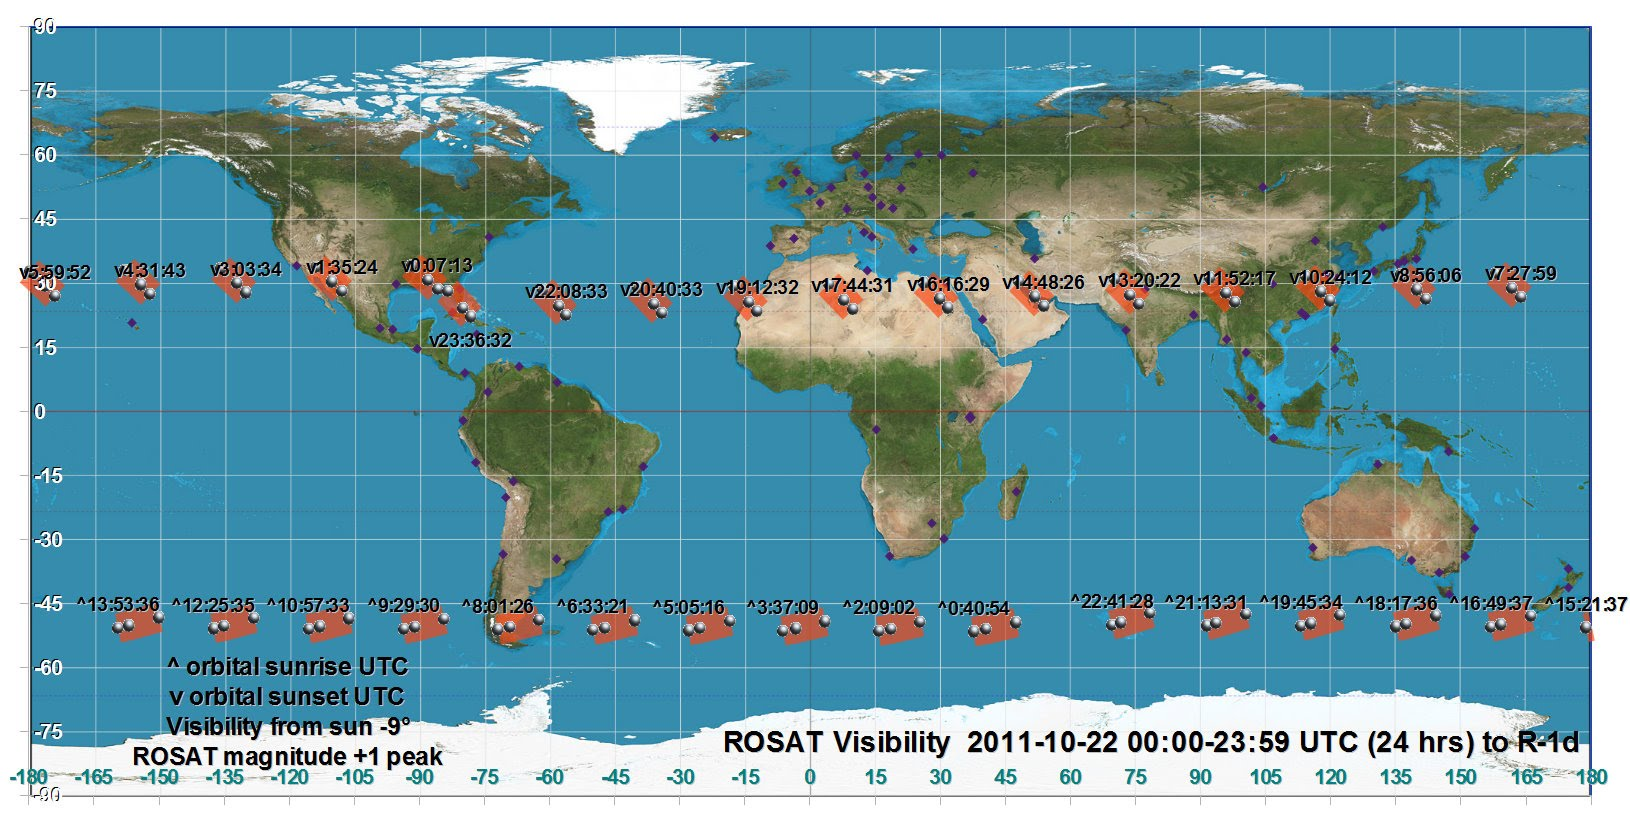 ROSAT world visibility 2011-10-22